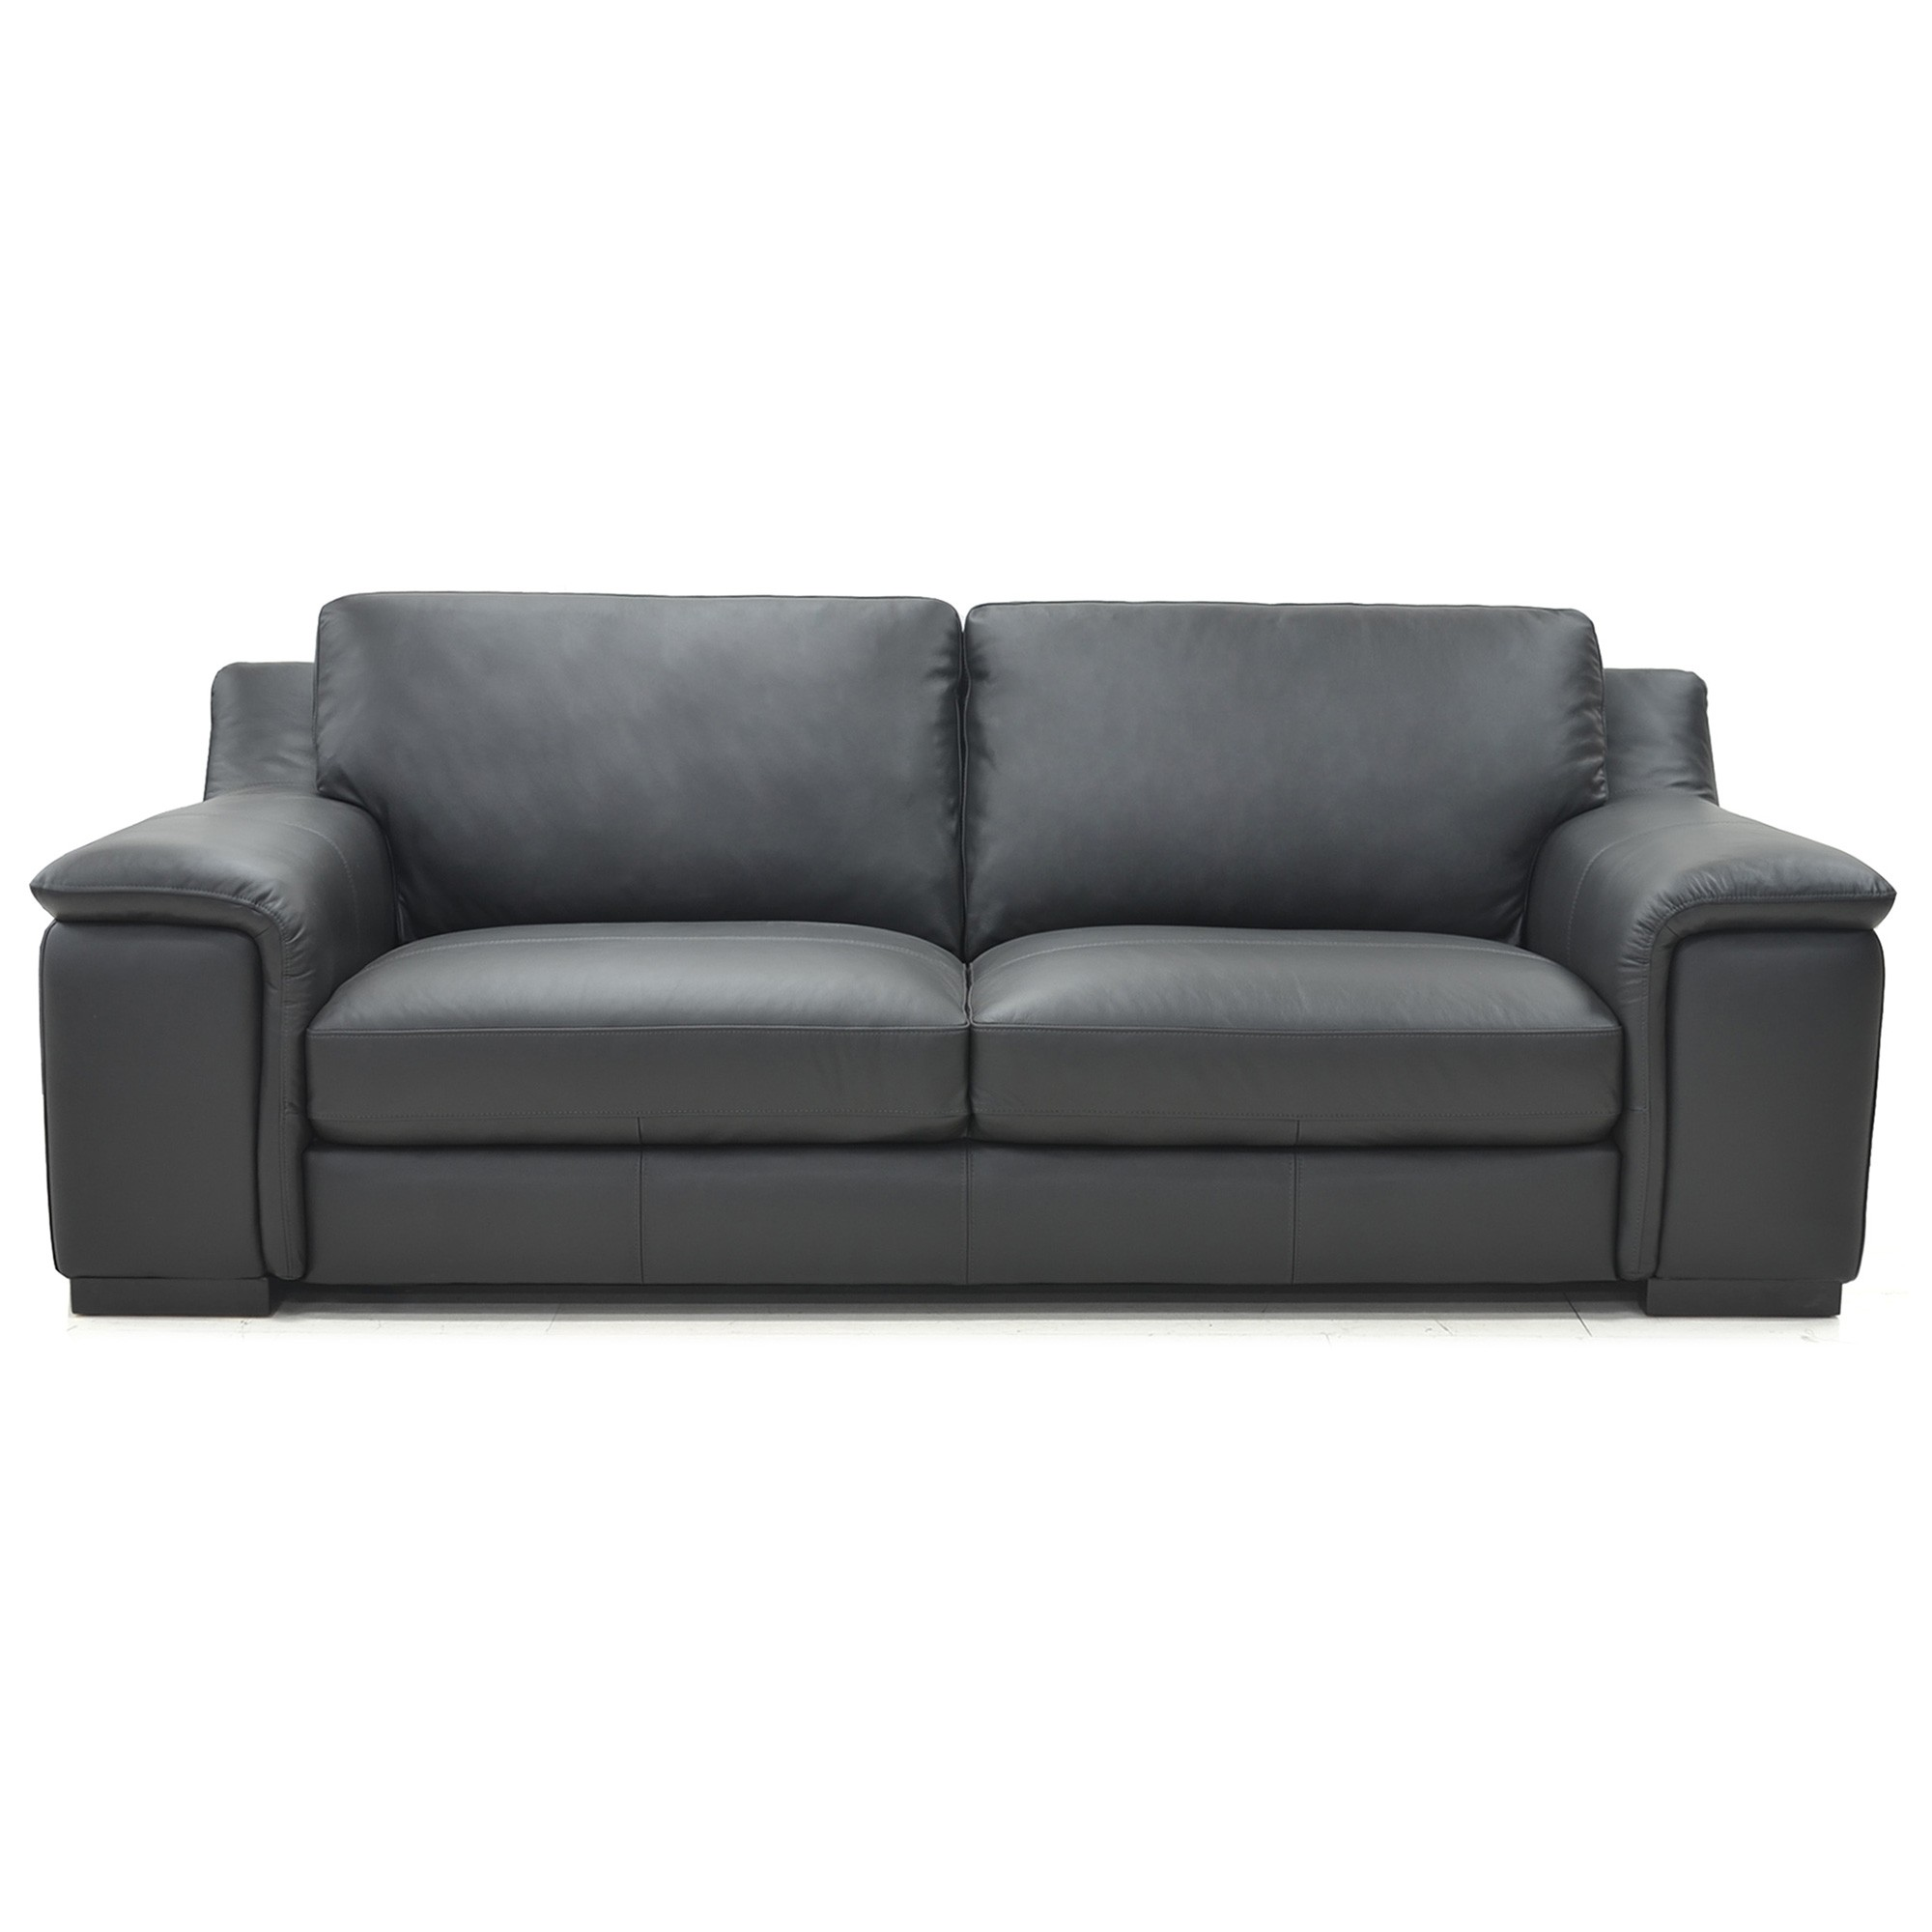 Herbster Leather Sofa, 2.5 Seater